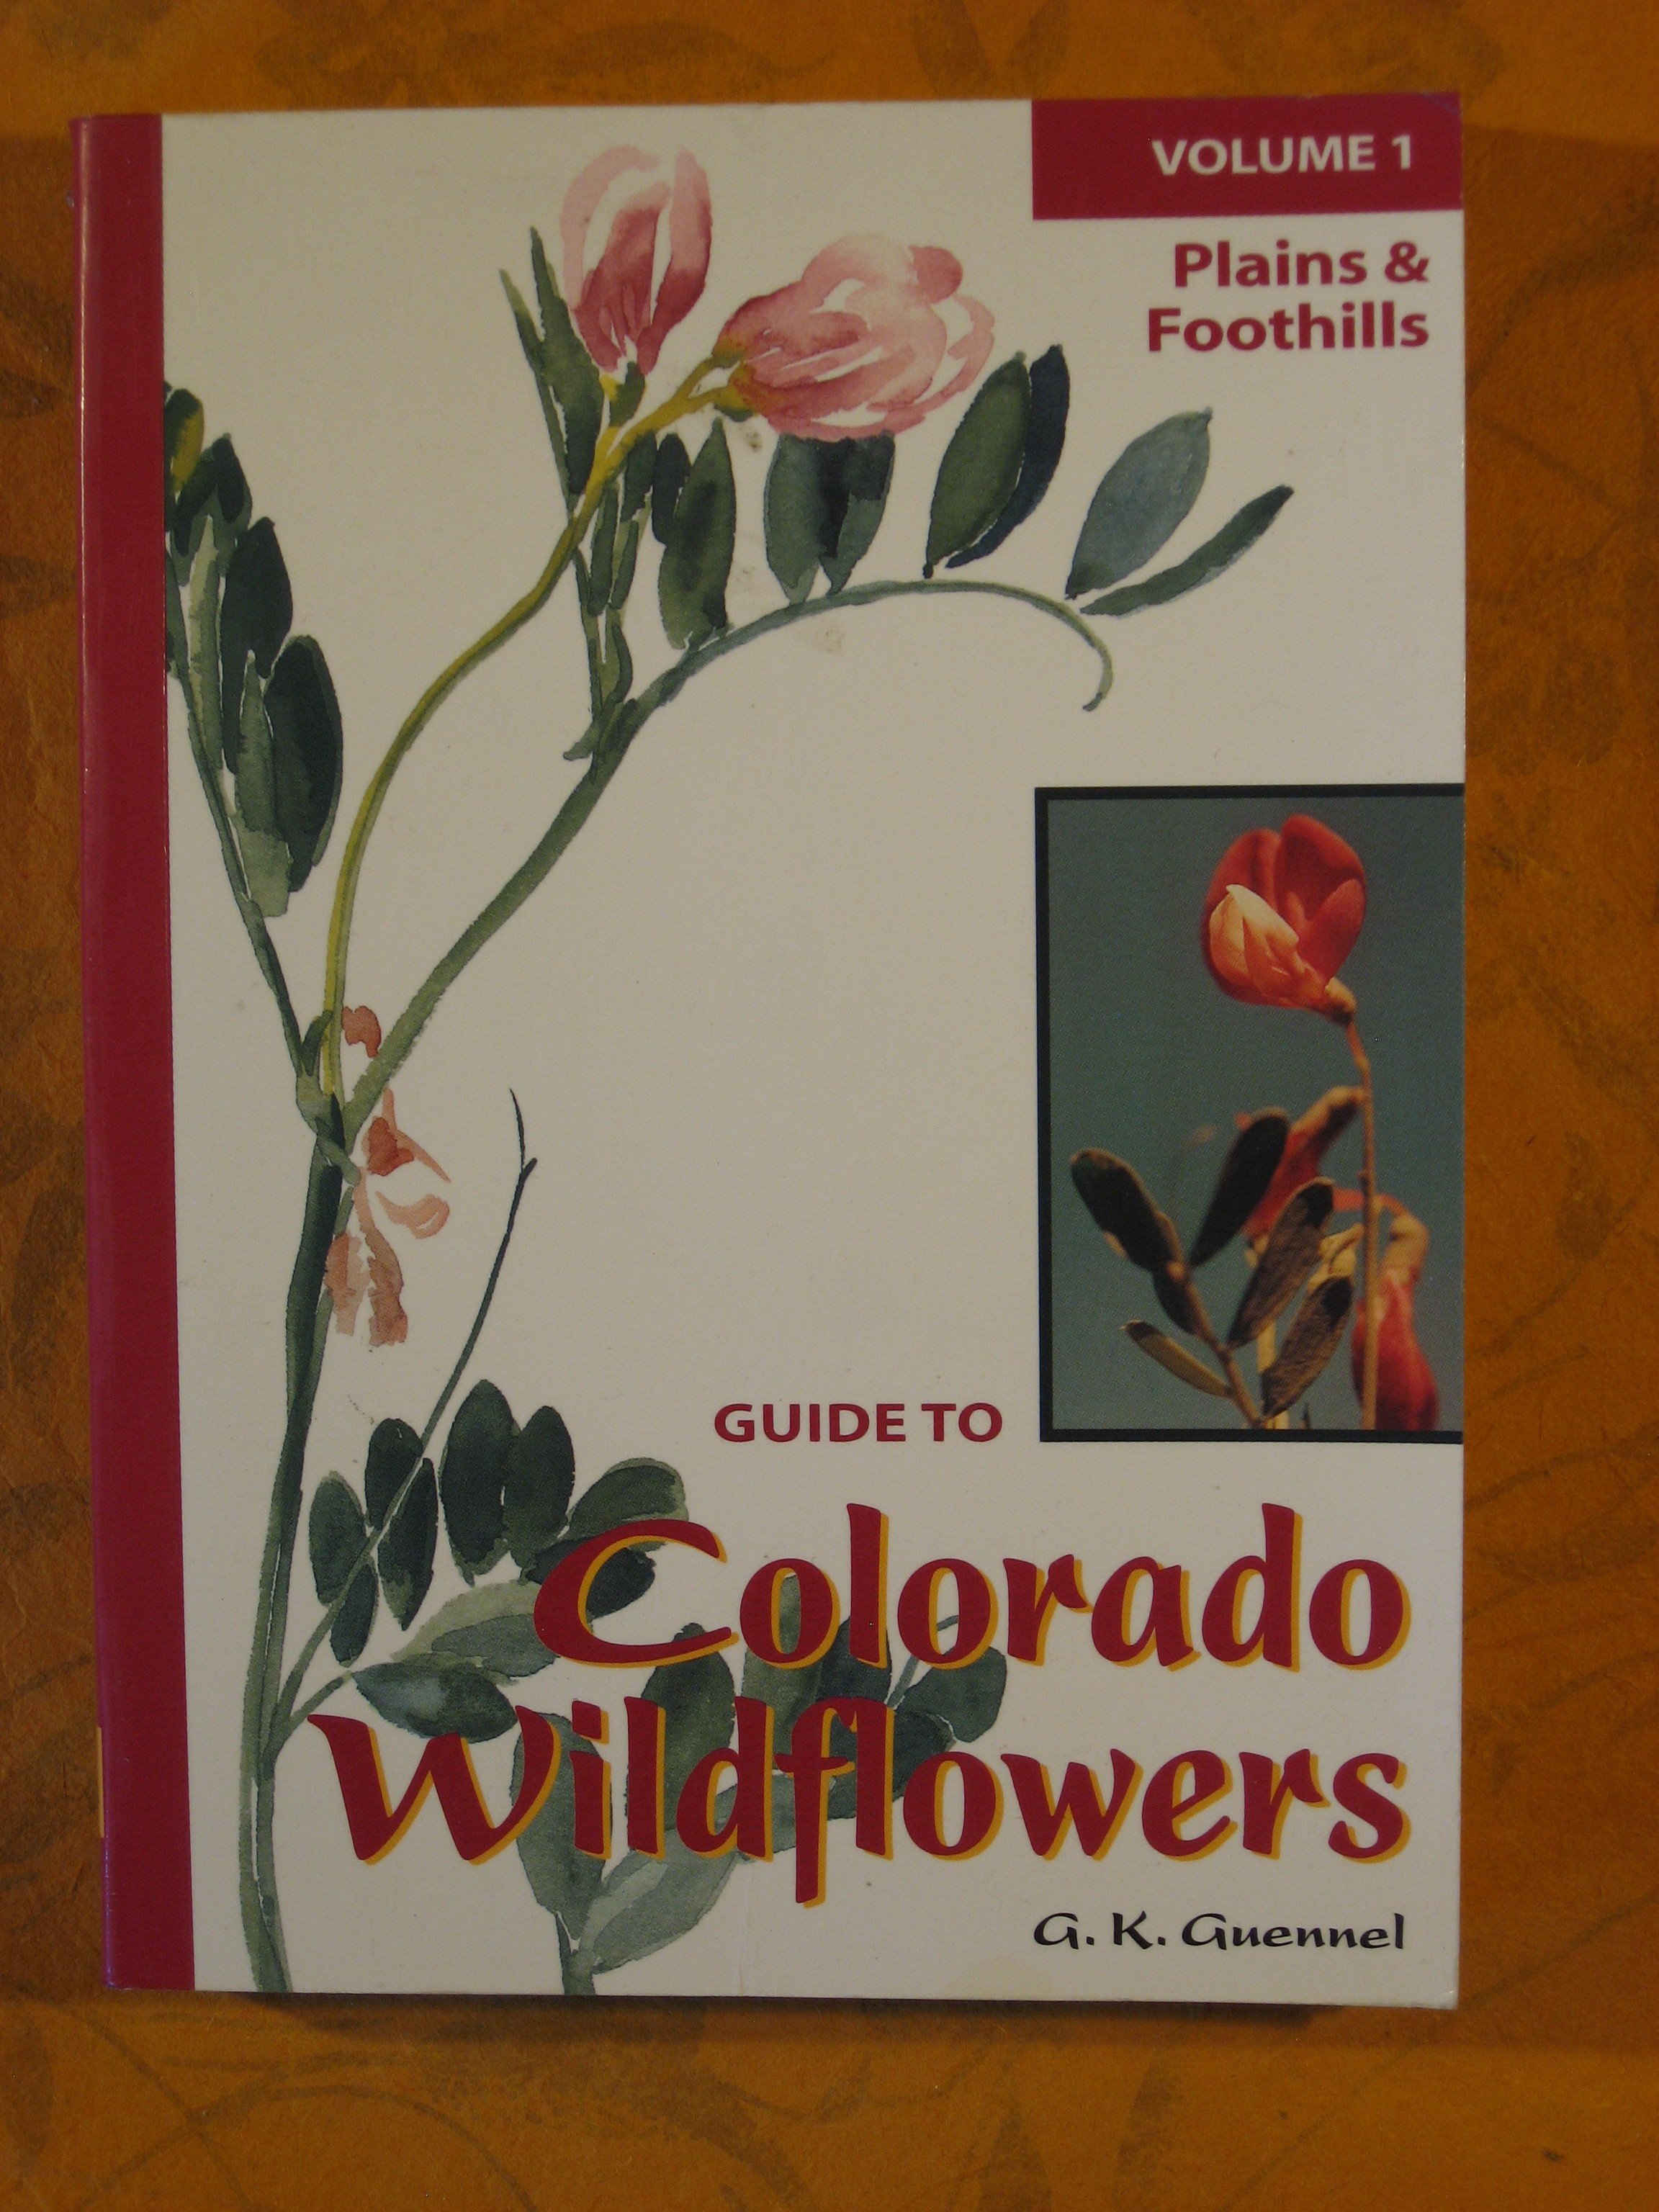 Image for Guide to Colorado Wildflowers Volume 1: Plains & Foothills